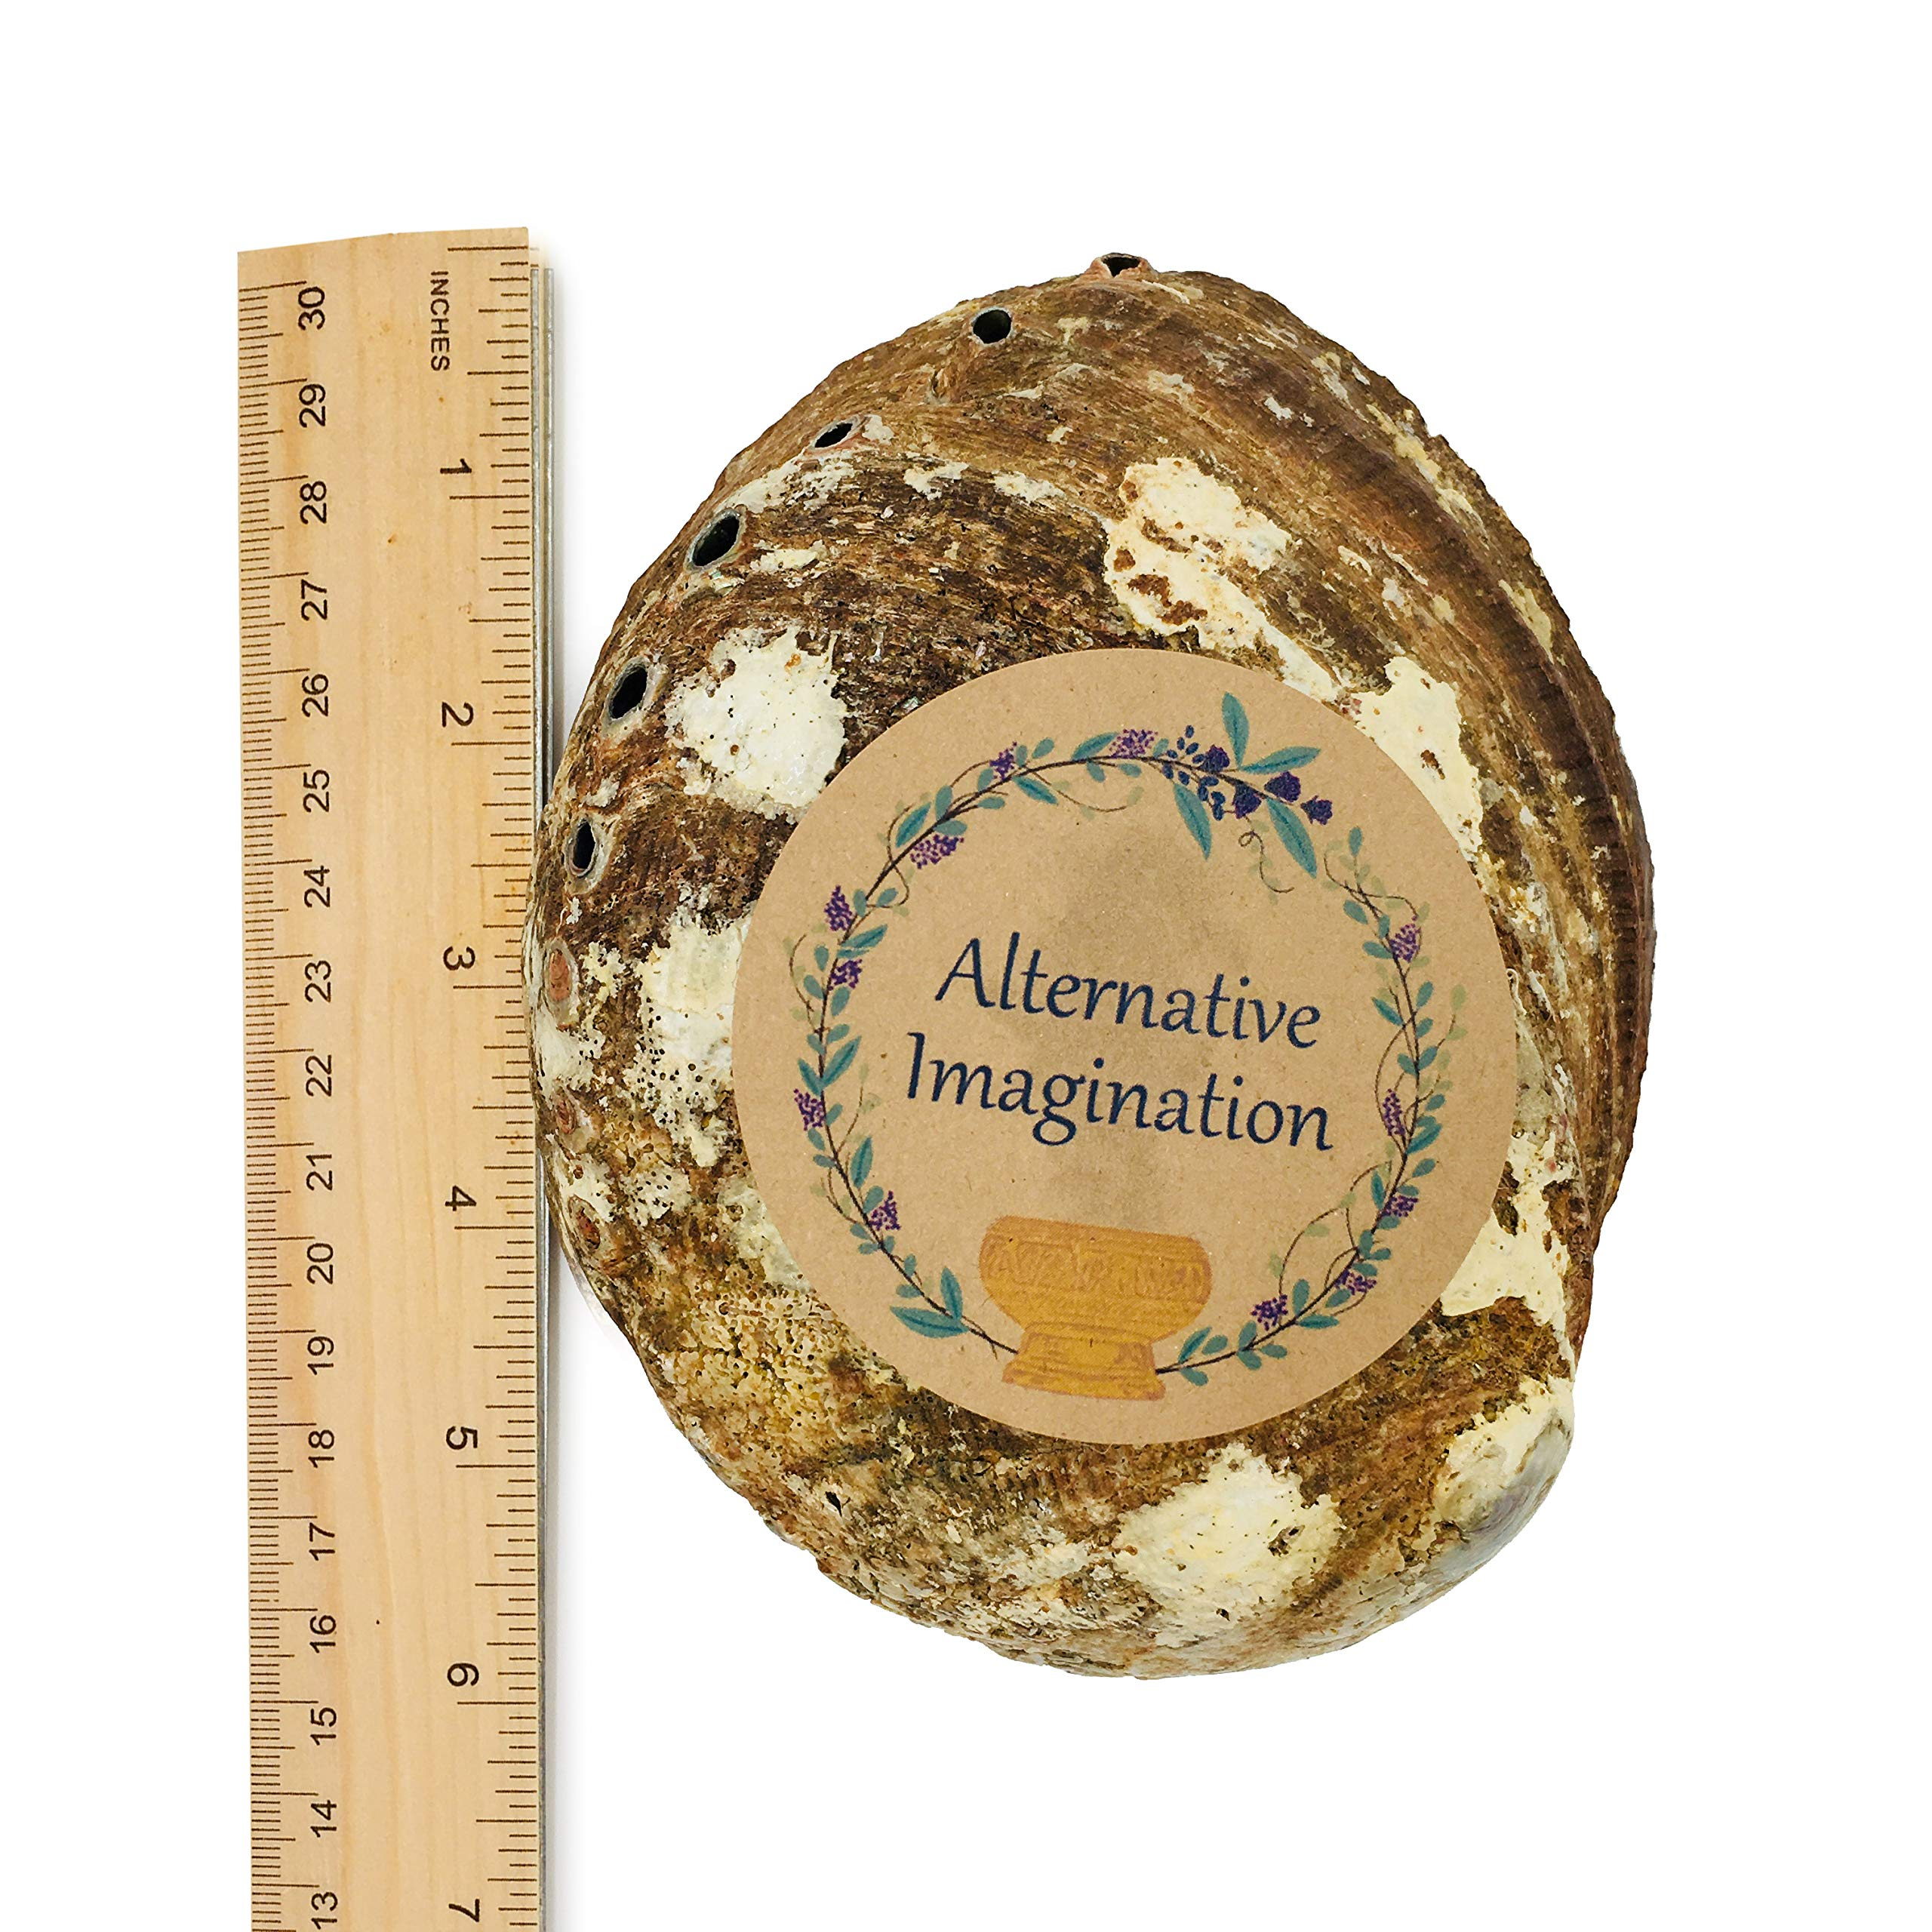 Alternative Imagination Hand Selected Abalone Shell, 5.5 Inches or Larger. Perfect for Holding Incense, Trinkets, and More by Alternative Imagination (Image #4)